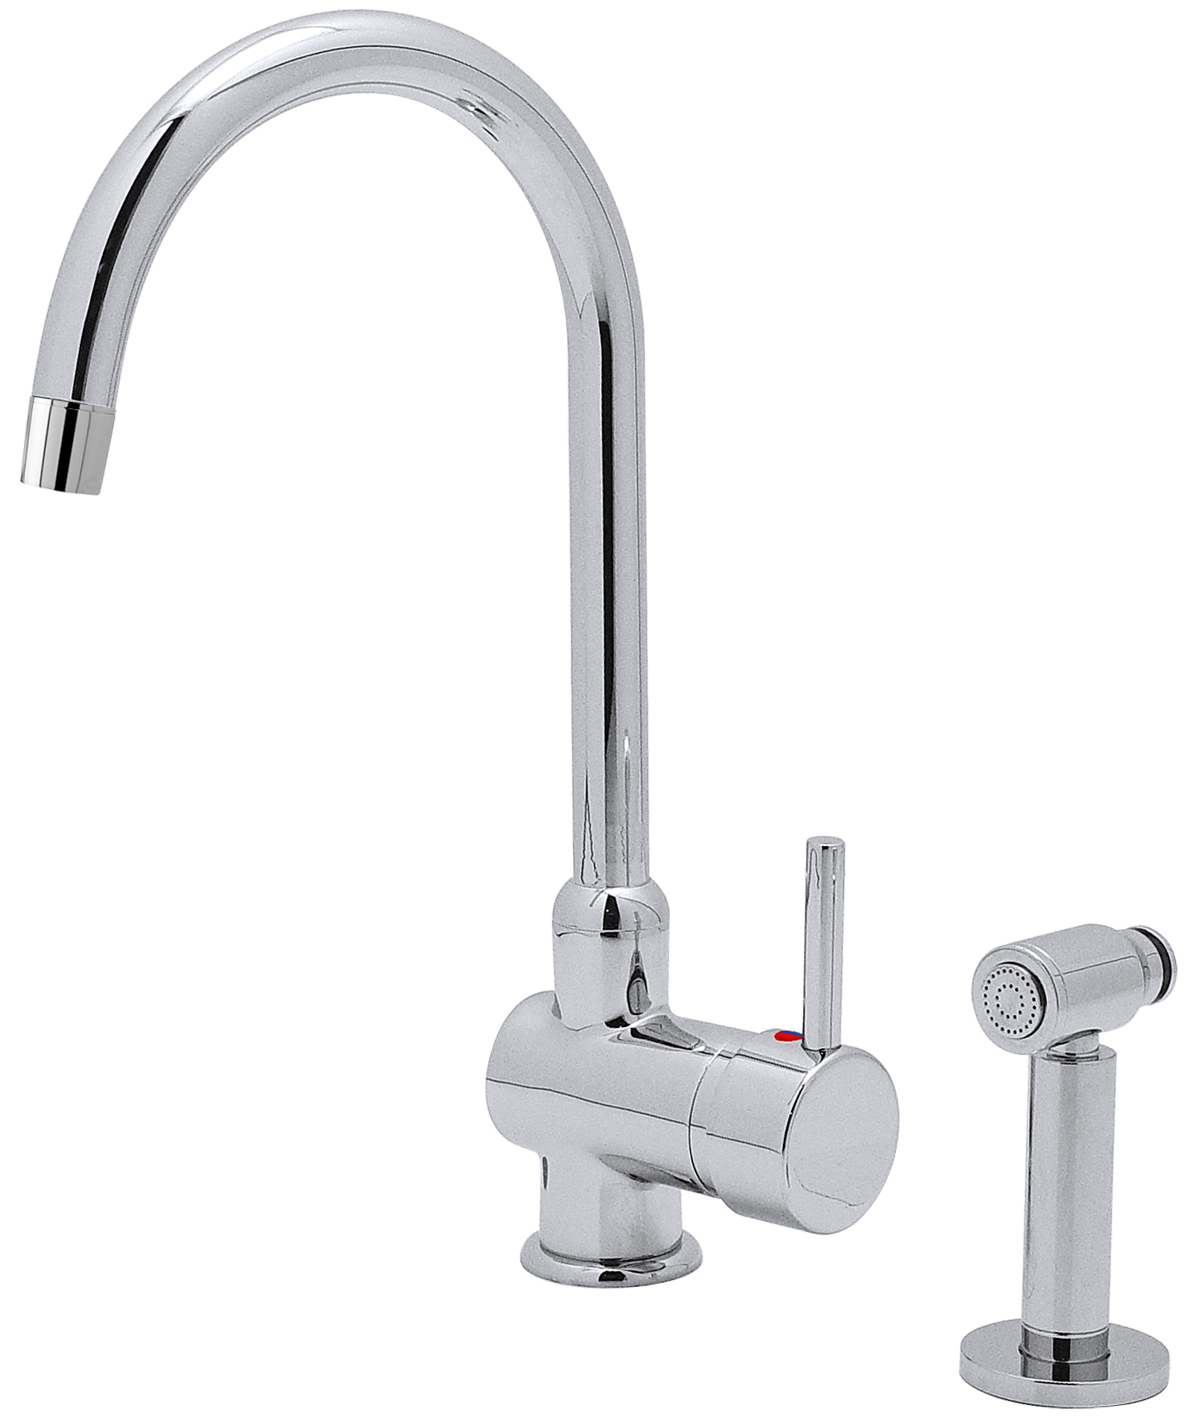 b lavatory en product handle by danze basin kitchen wash taps parma amalfi single faucet faucets